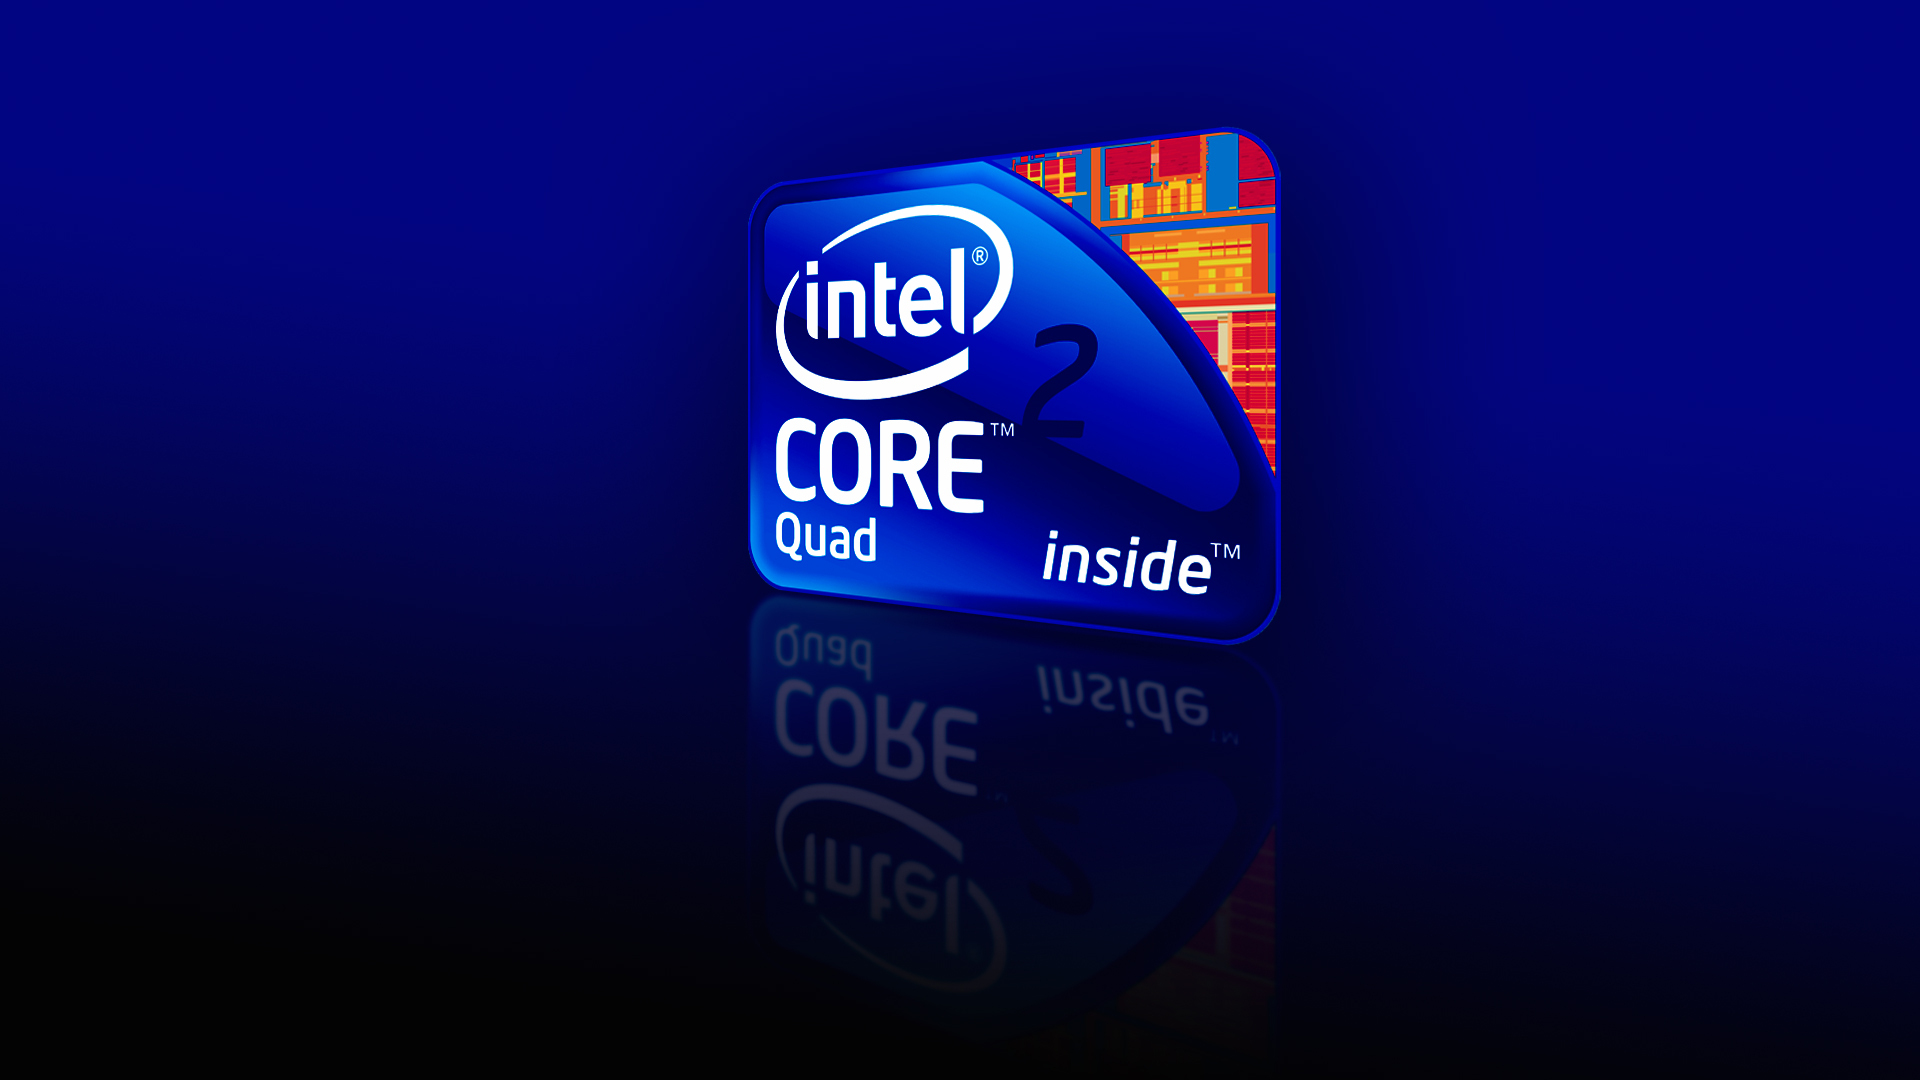 Intel core 2 quad core i7 logo 1080p wallpapers Rumah IT 1920x1080